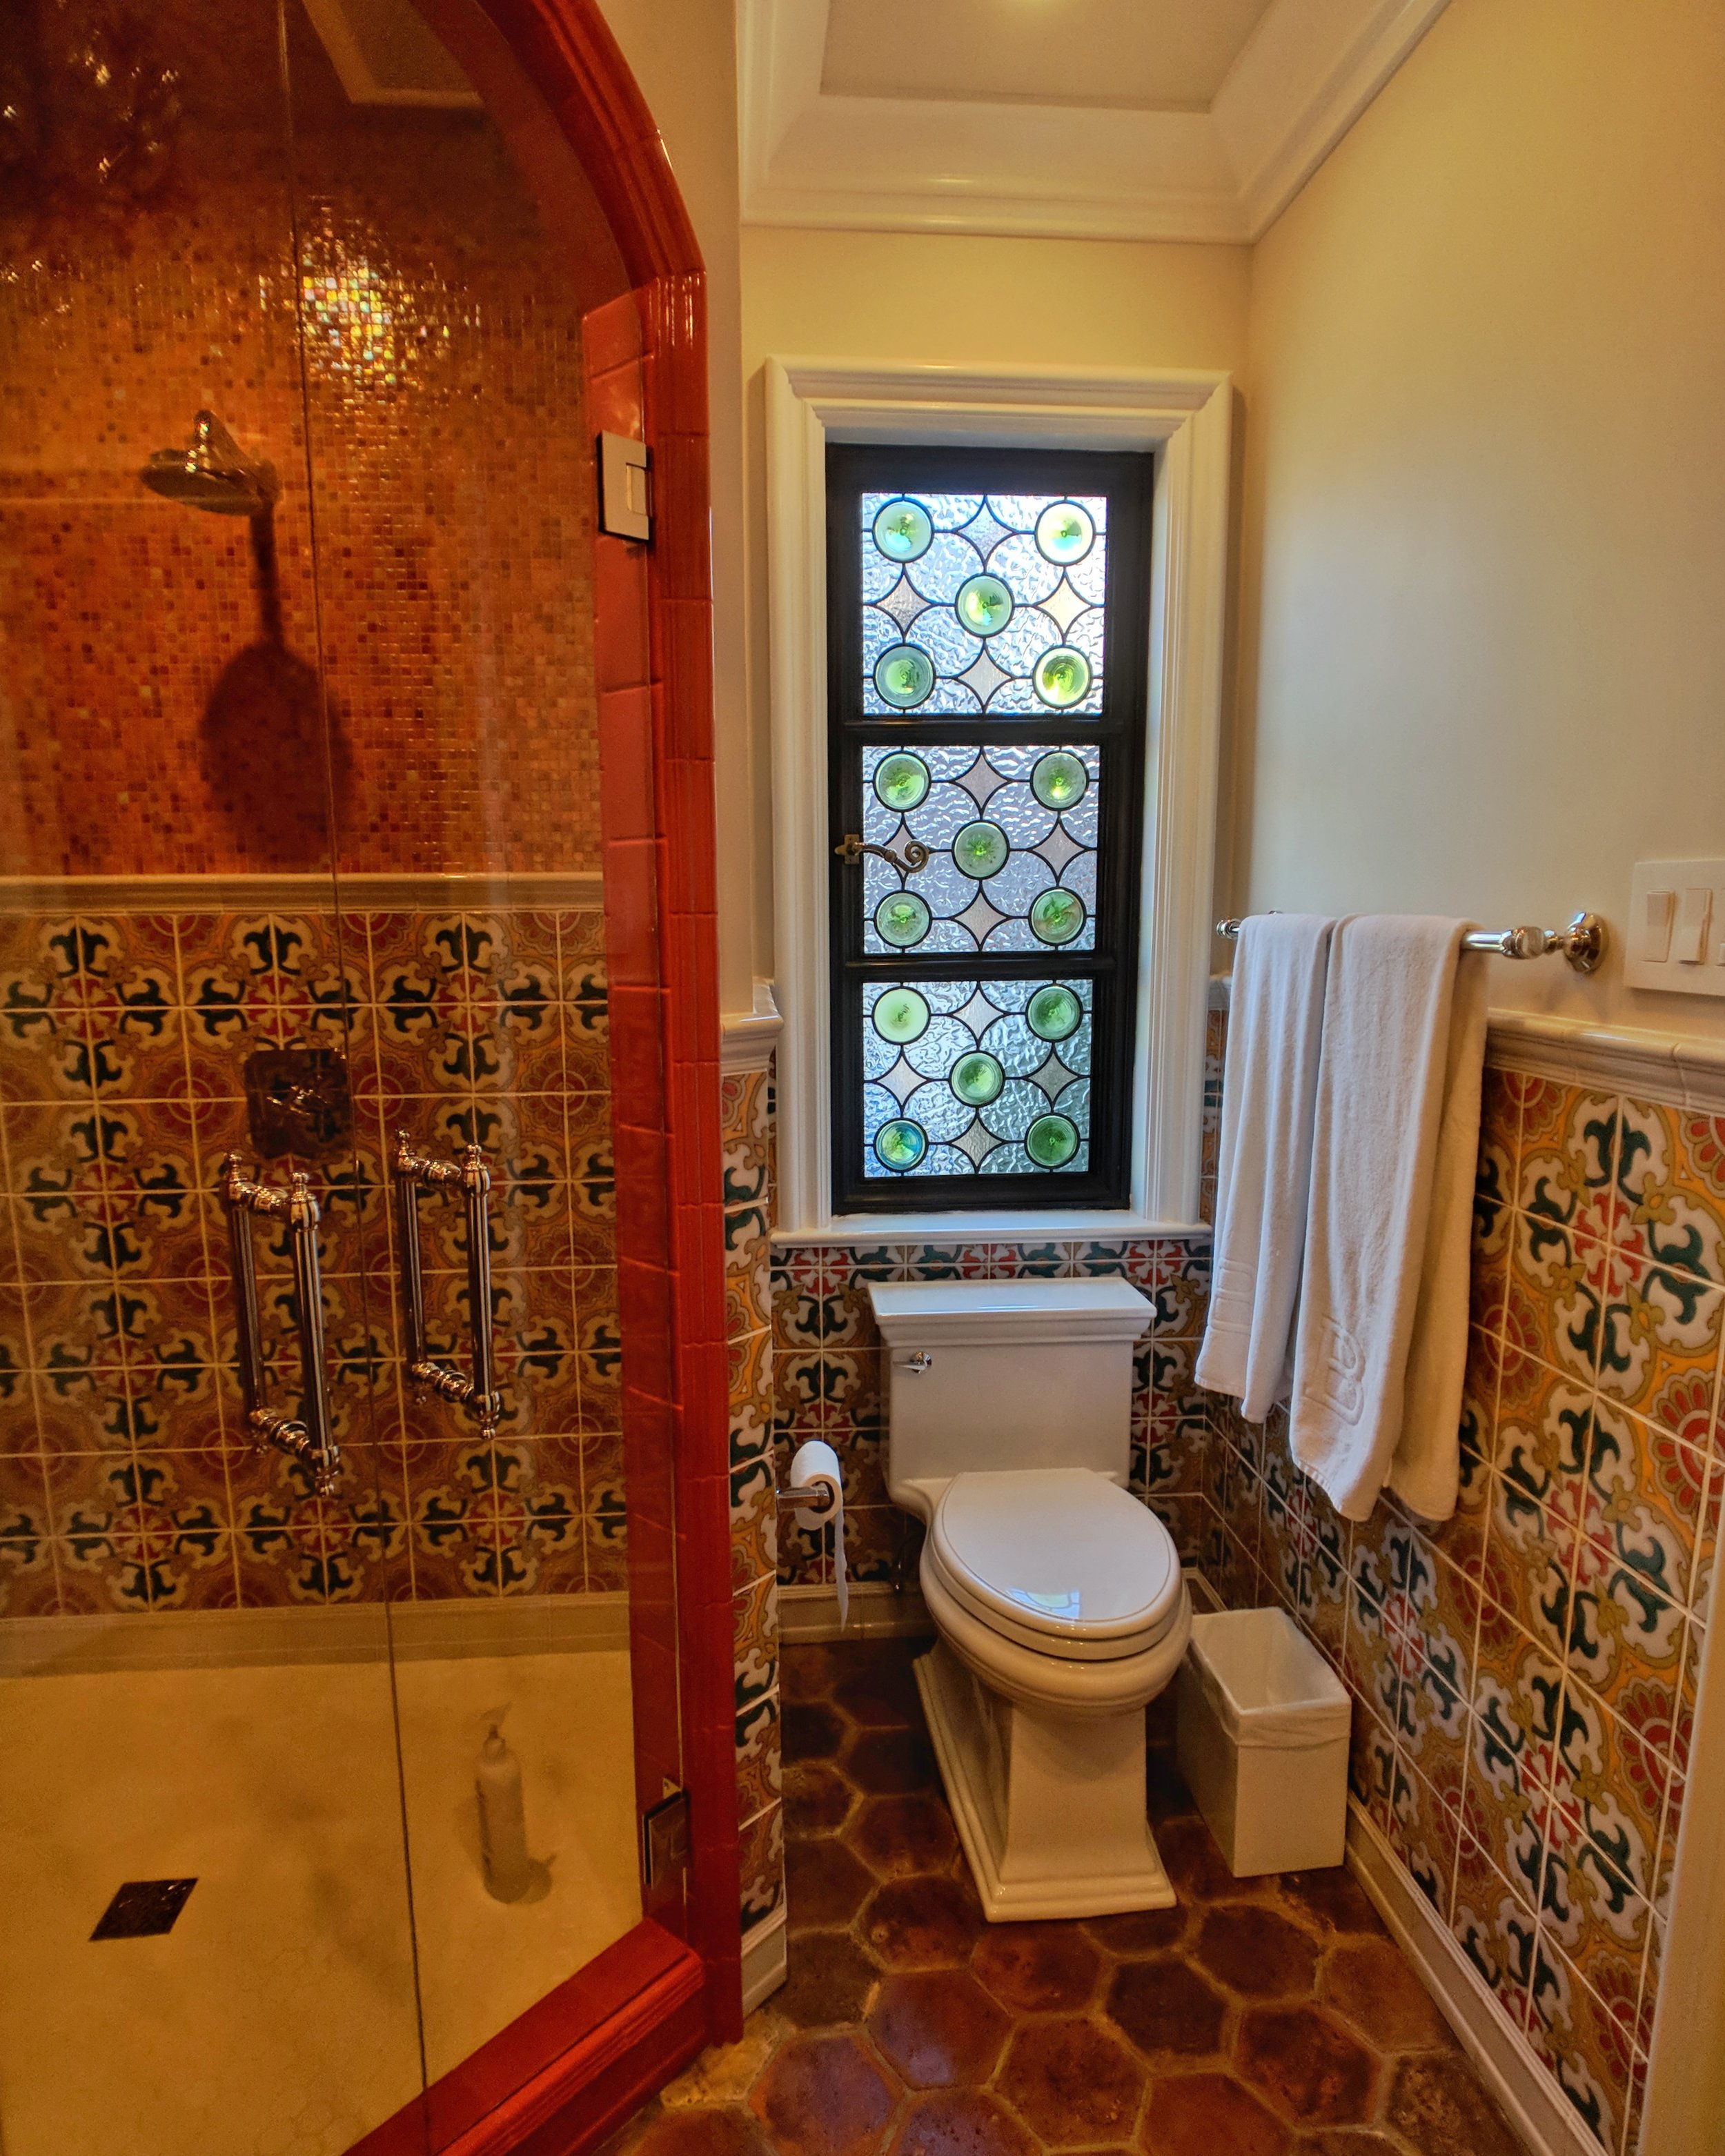 stained glass leaded glass design legacy glass studios menlo park bay area california custom design rondels spanish influence interior design tile privacy glass.jpeg